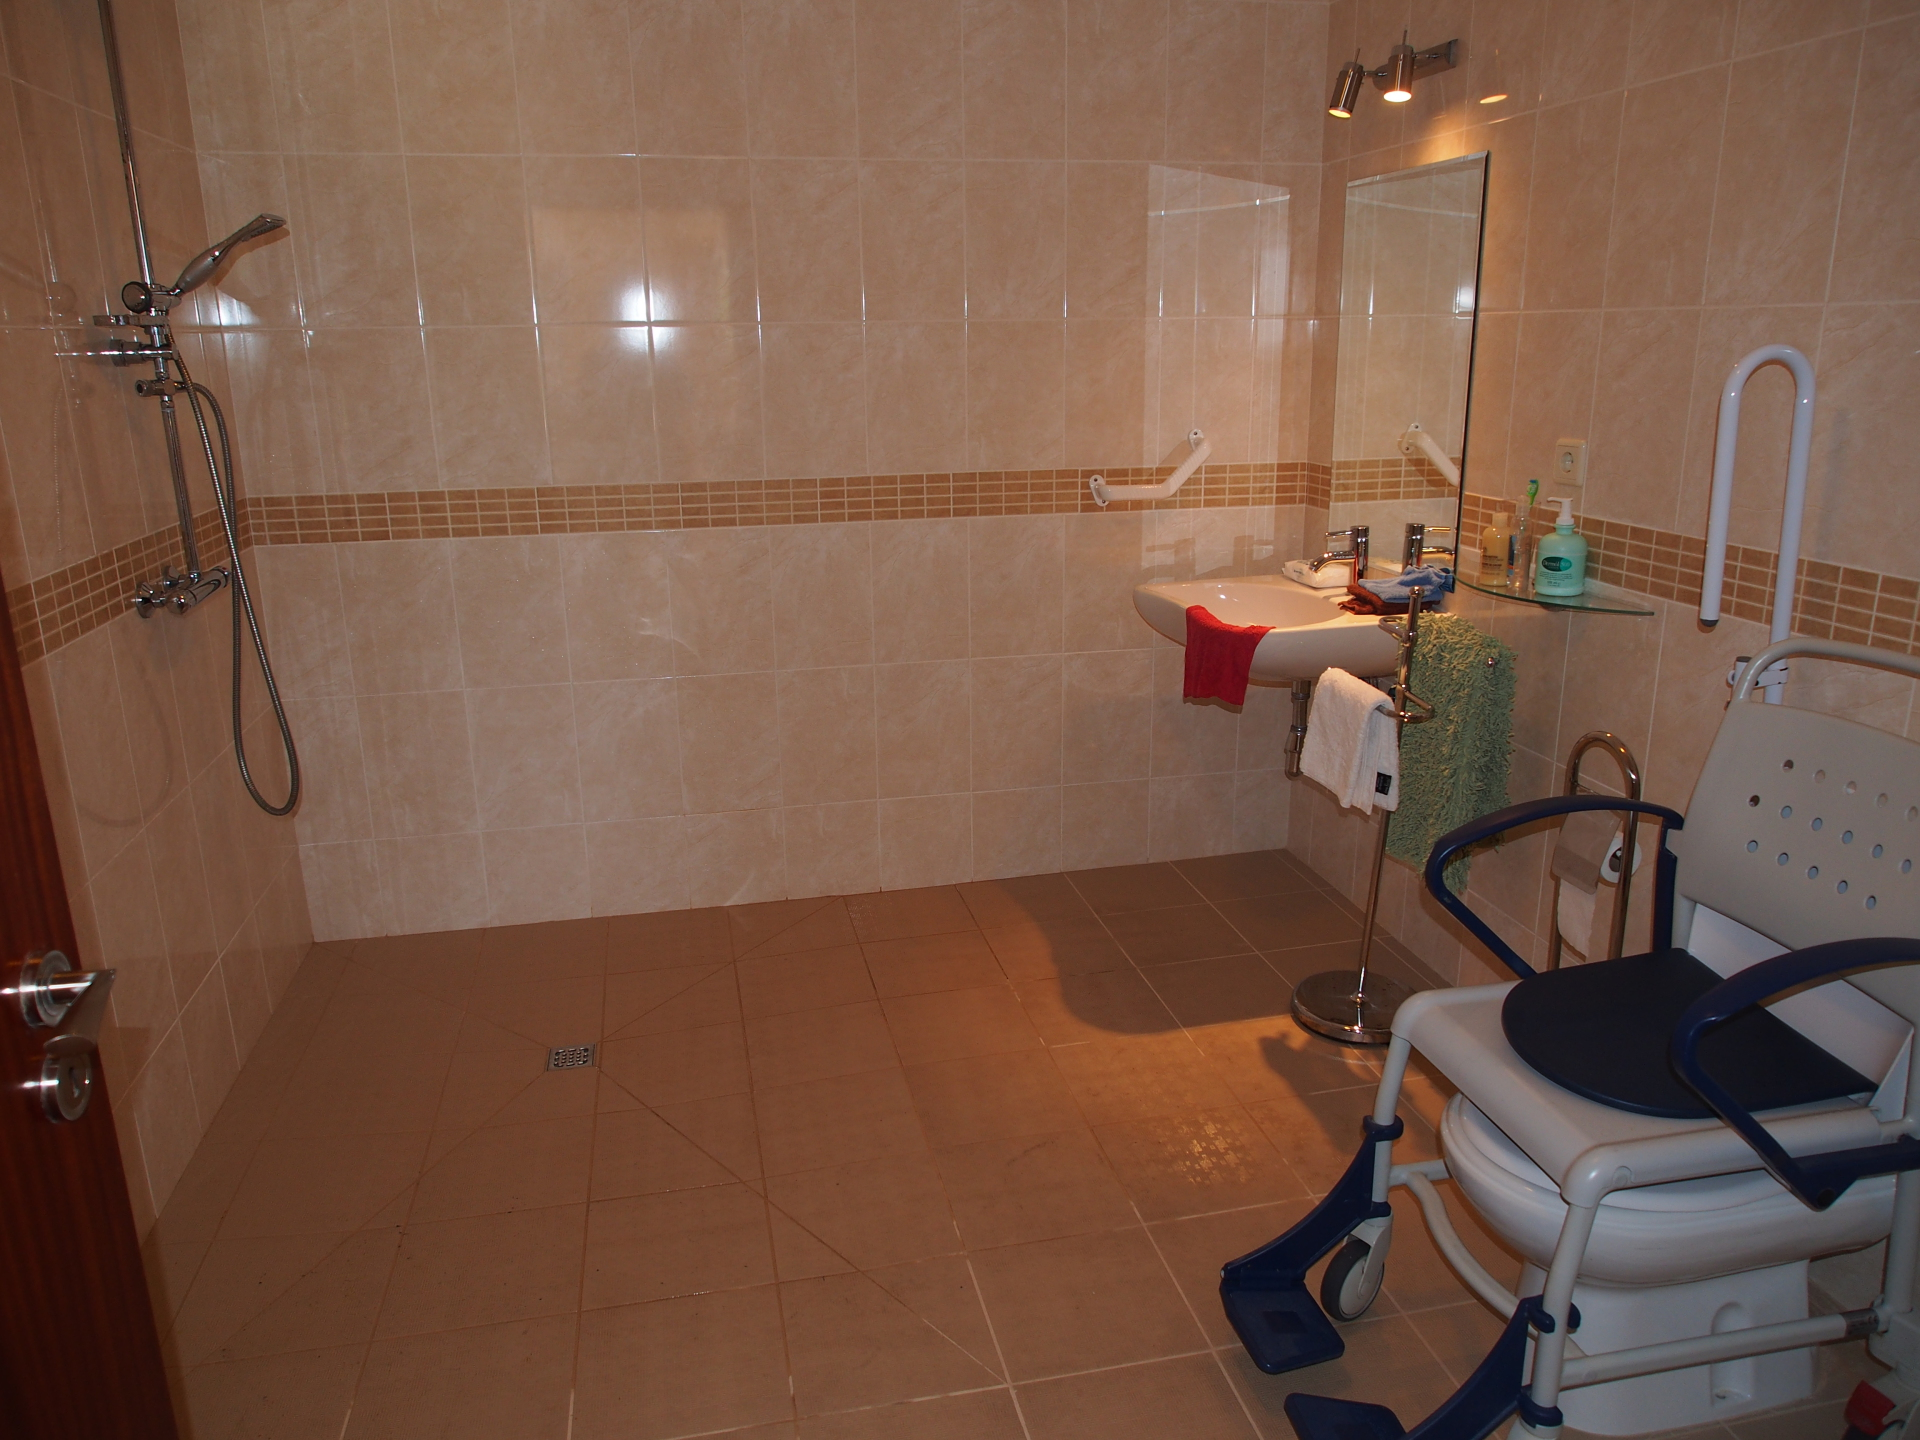 3 bedroom apartment wet room without shower table